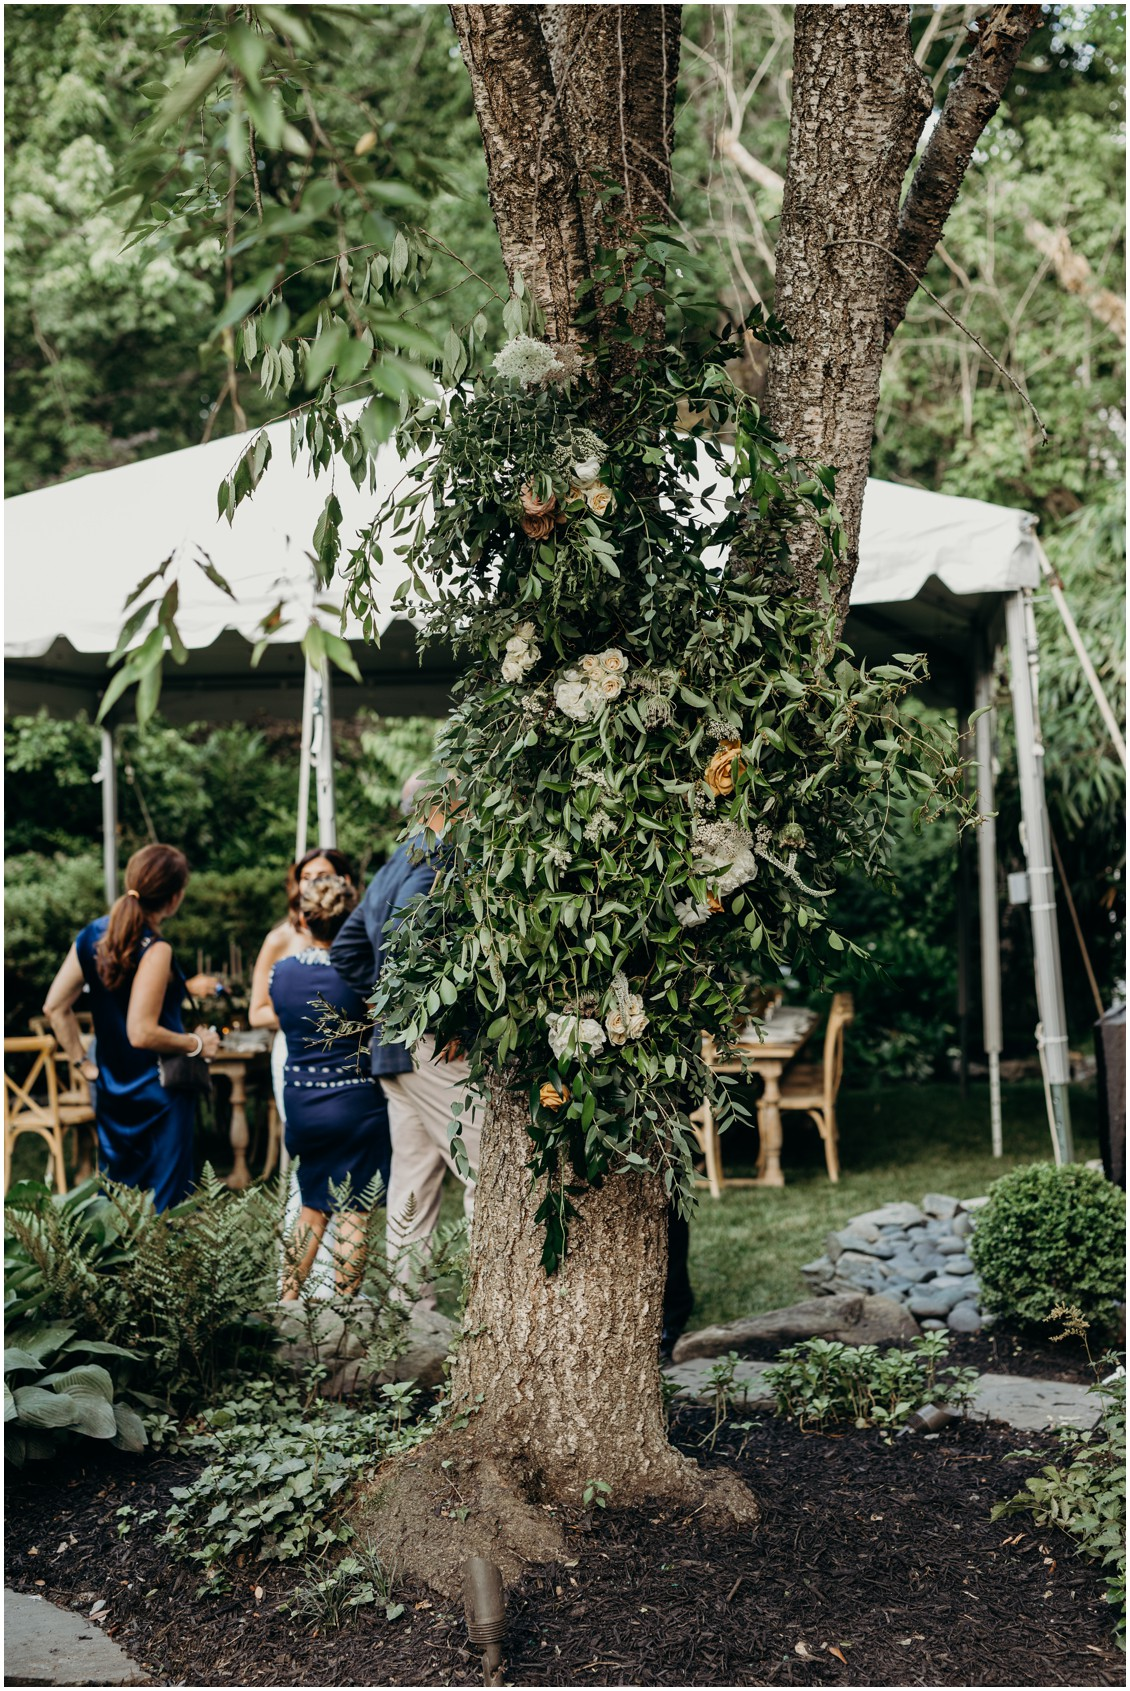 Details of floral decoration on tree  | My Eastern Shore Wedding | Sherwood Florist